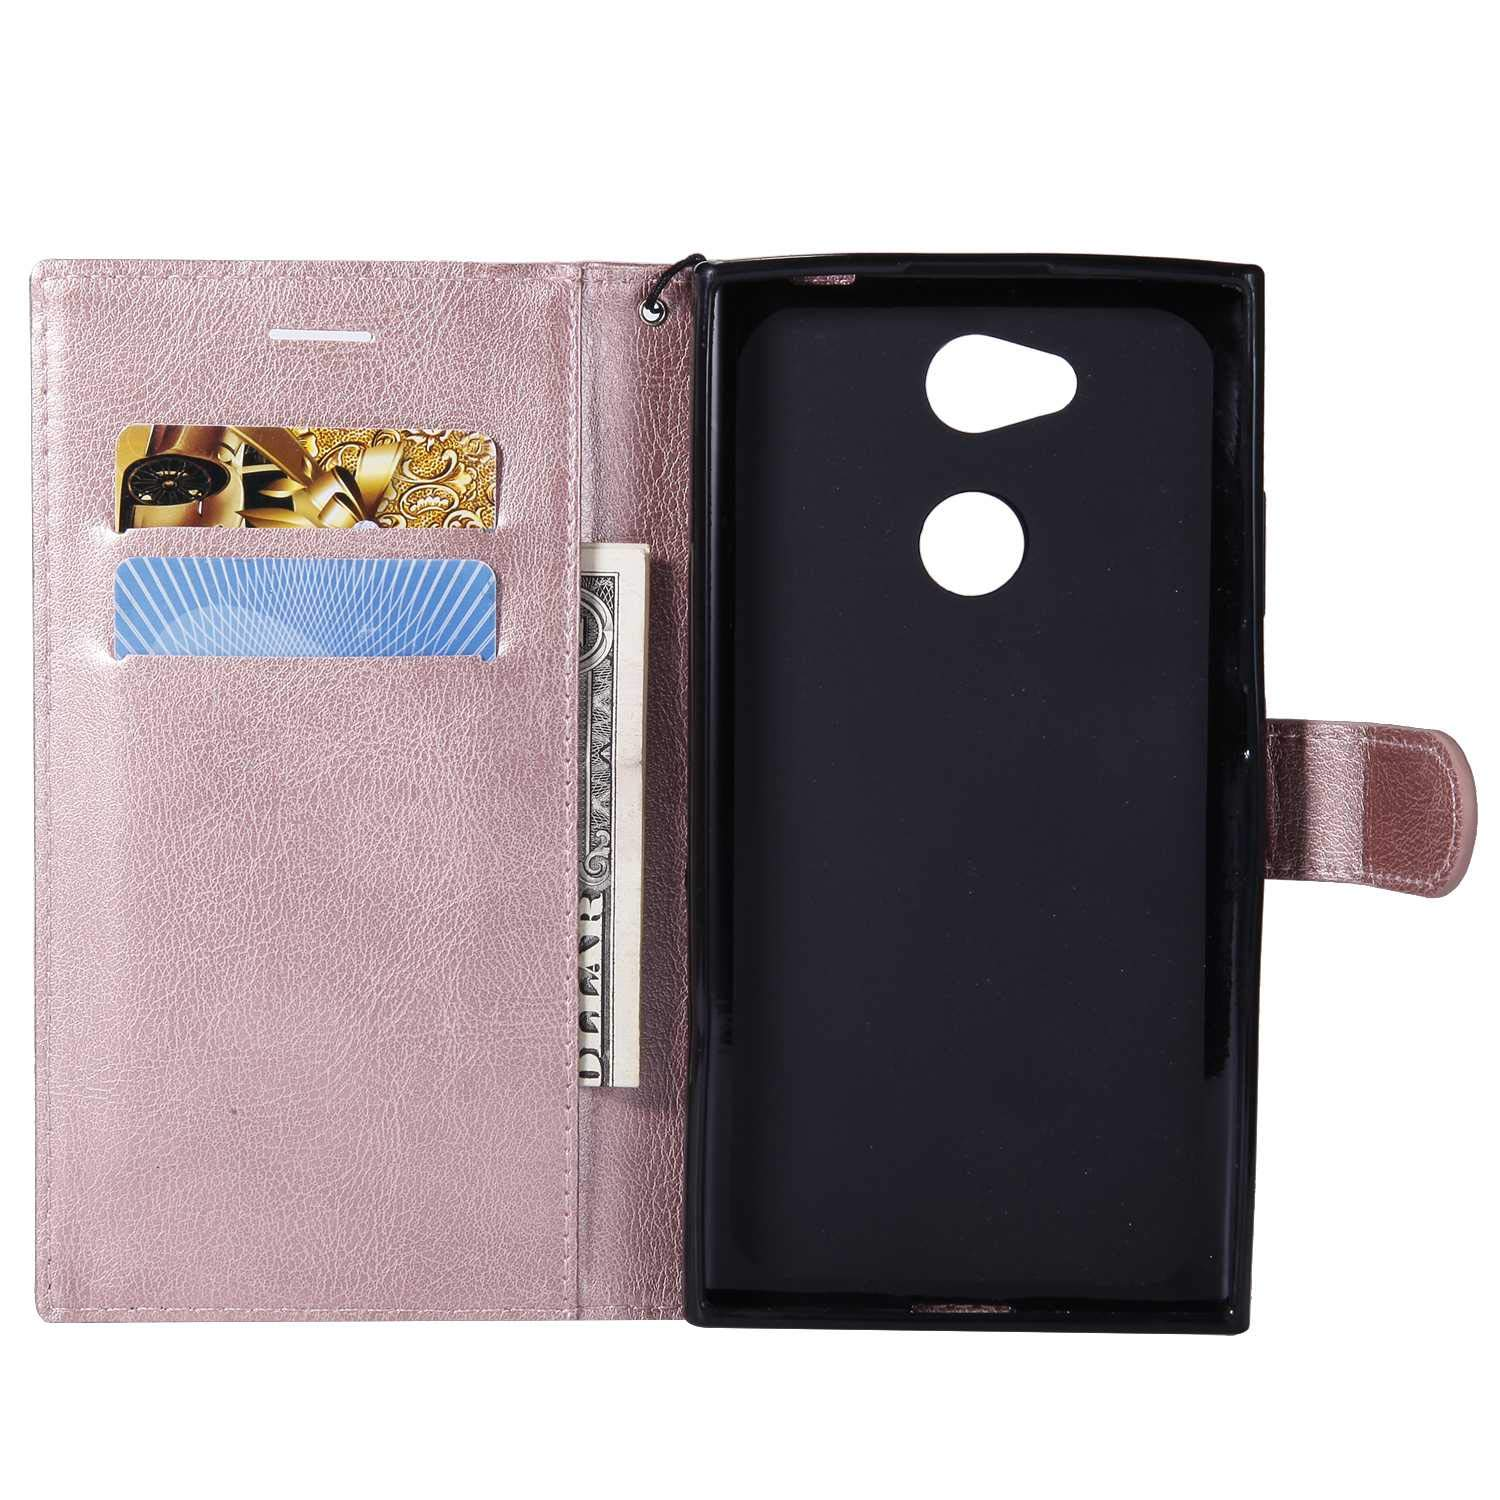 Sony Xperia L2 Wallet Case, CUSKING Premium Leather Cover with Silicone Inner Case for Sony Xperia L2 [Card Holder] [Magnetic Closure] [Hand Strap] - Rose Gold by CUSKING (Image #3)